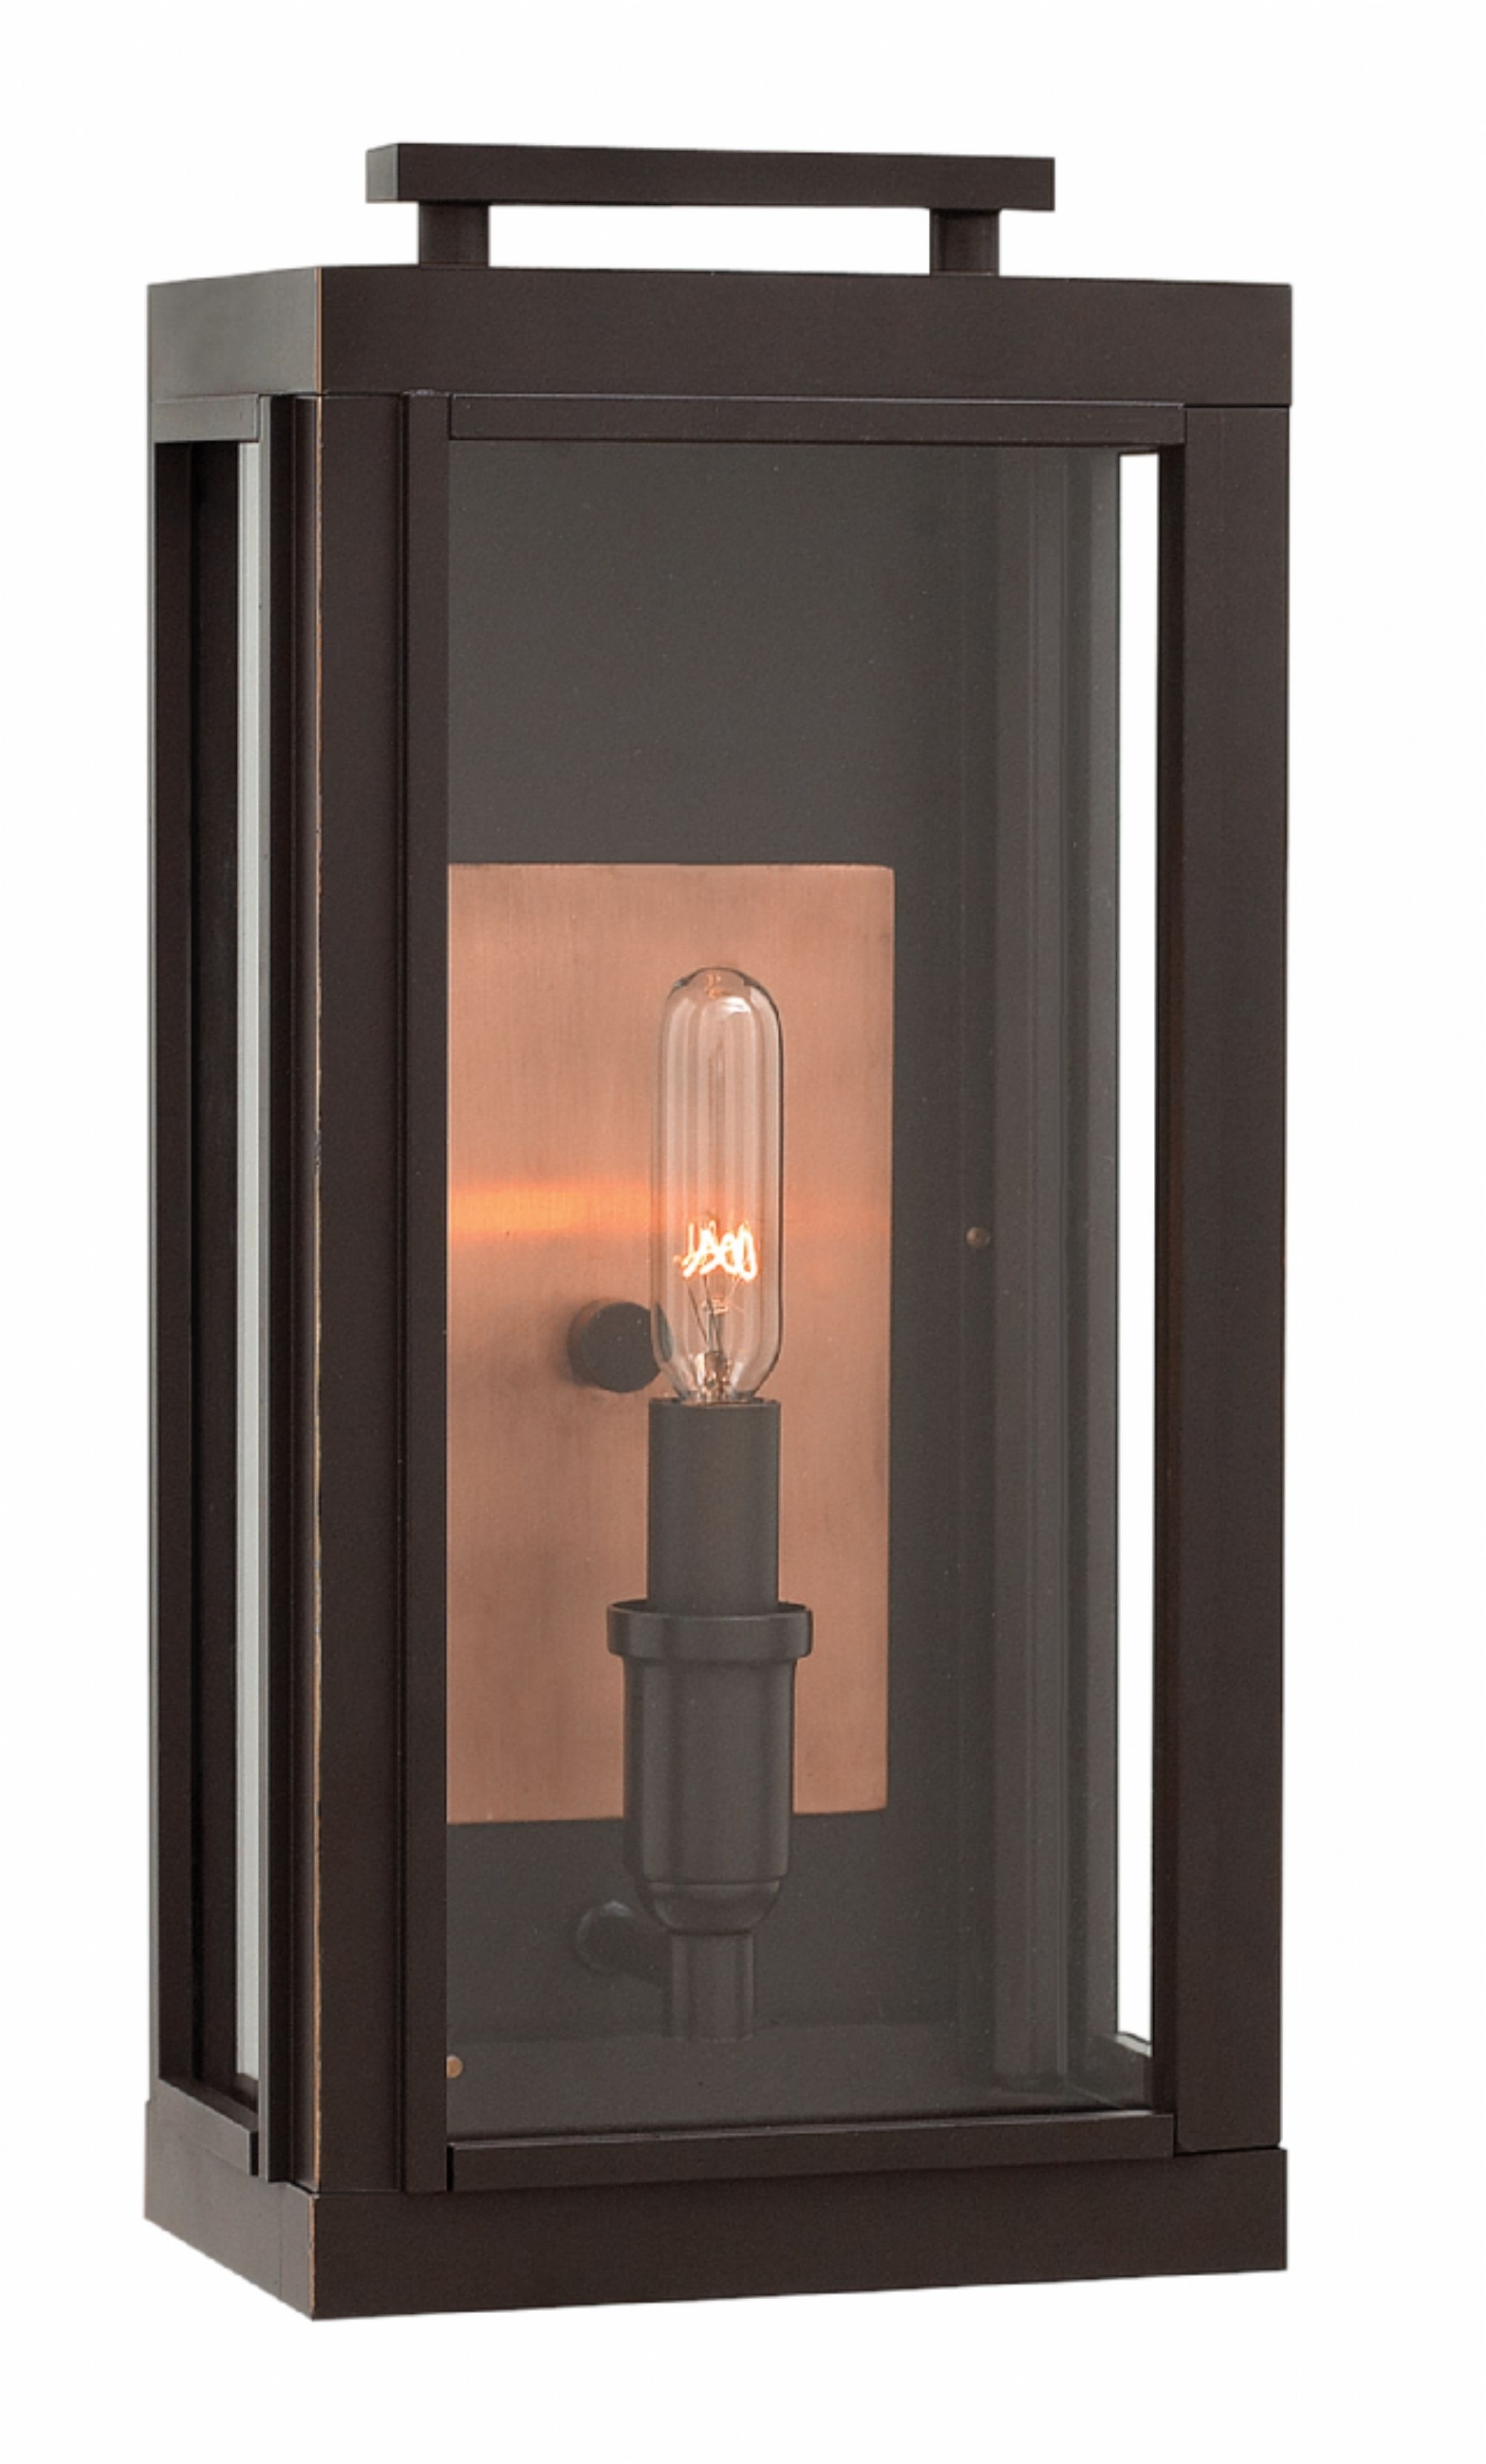 Double Wall Mount Hinkley Lighting Within Fashionable Oil Rubbed Bronze Sutcliffe > Exterior Wall Mount (Gallery 13 of 20)